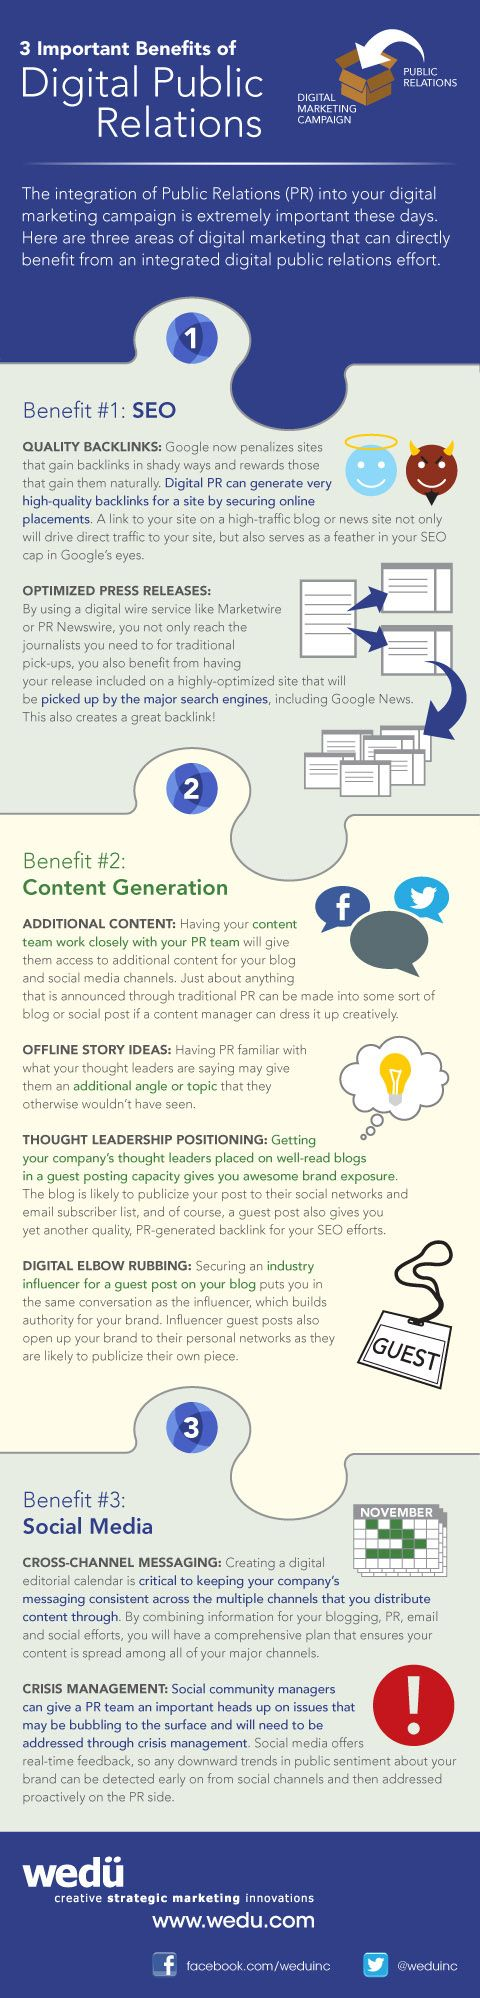 3 important benefits of Digital Public Relations #infographic